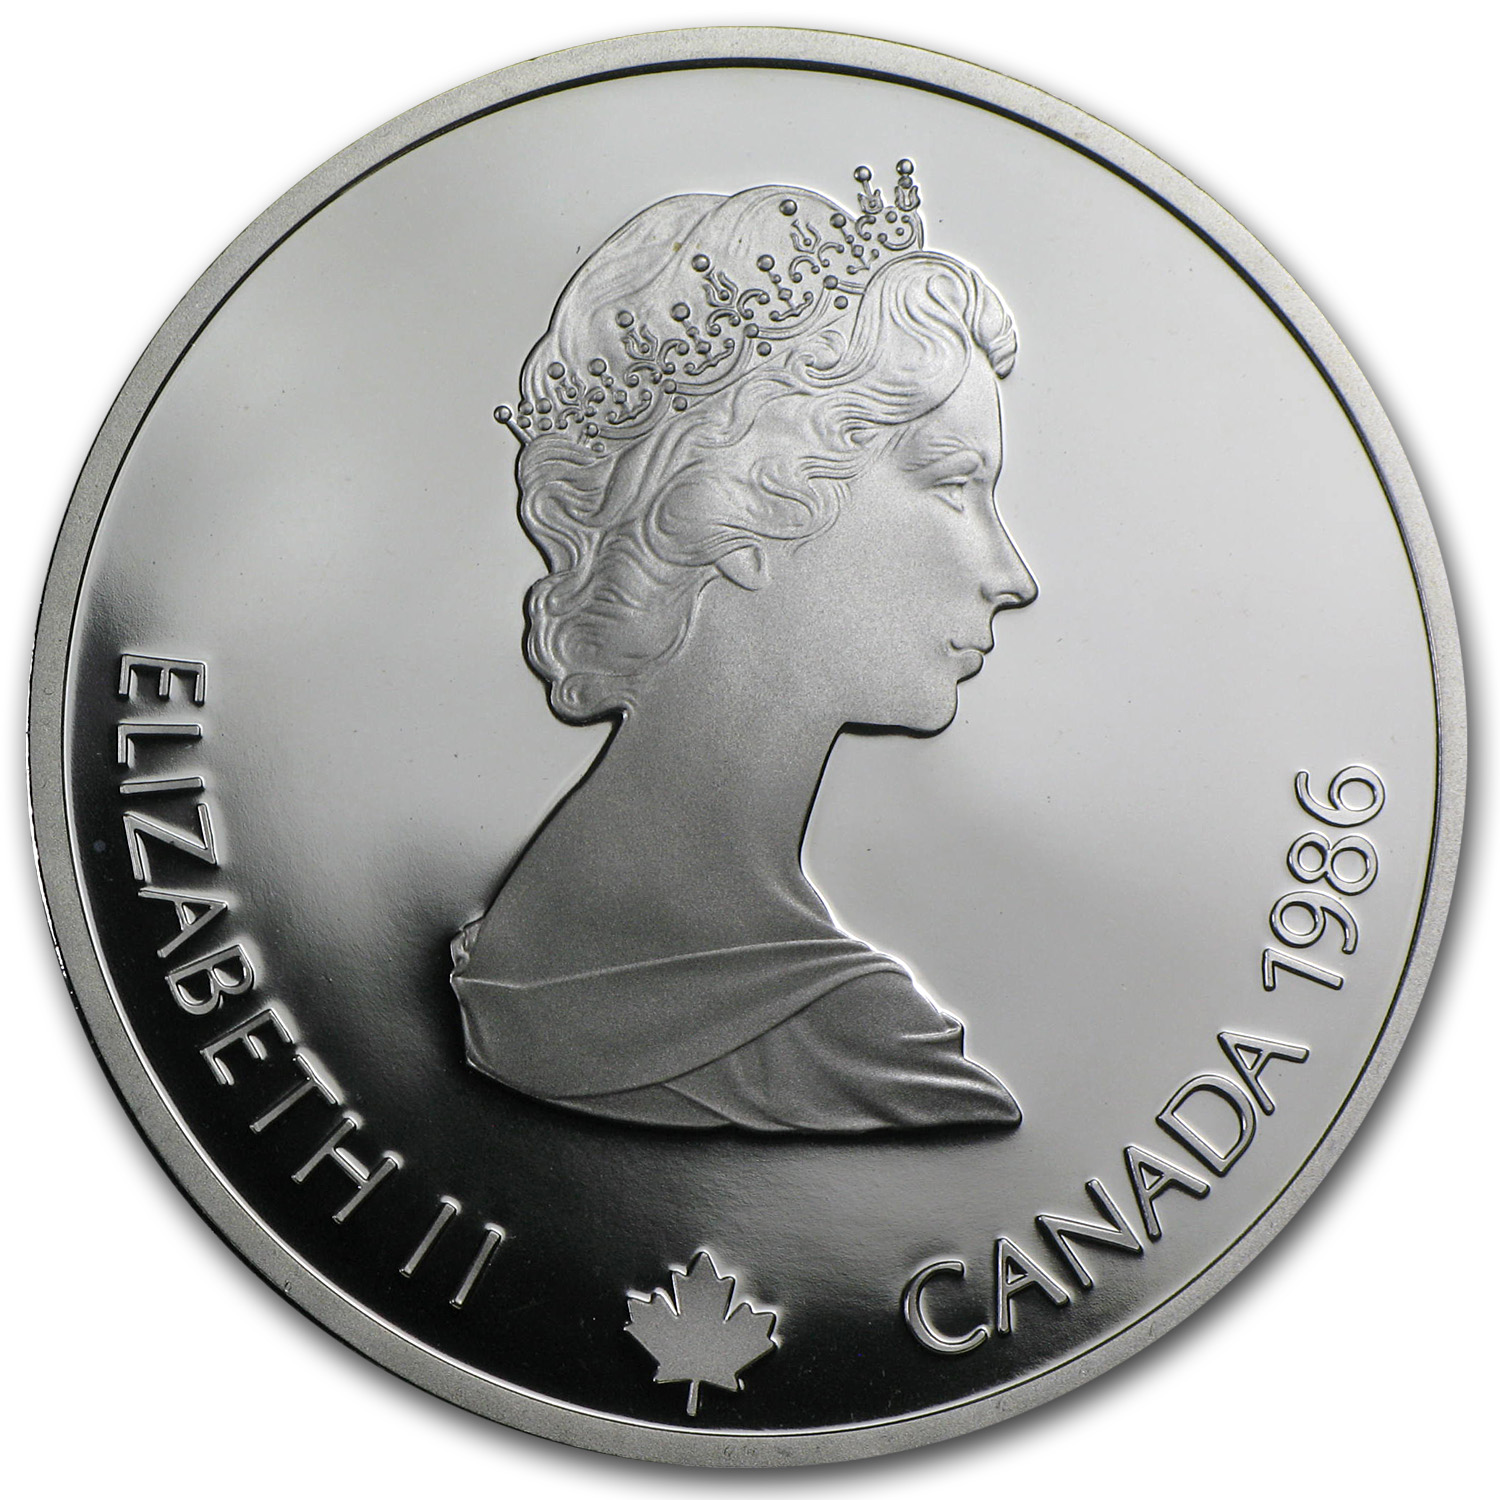 1988 Canada 20 Silver Commem Olympics Proof Coins 1988